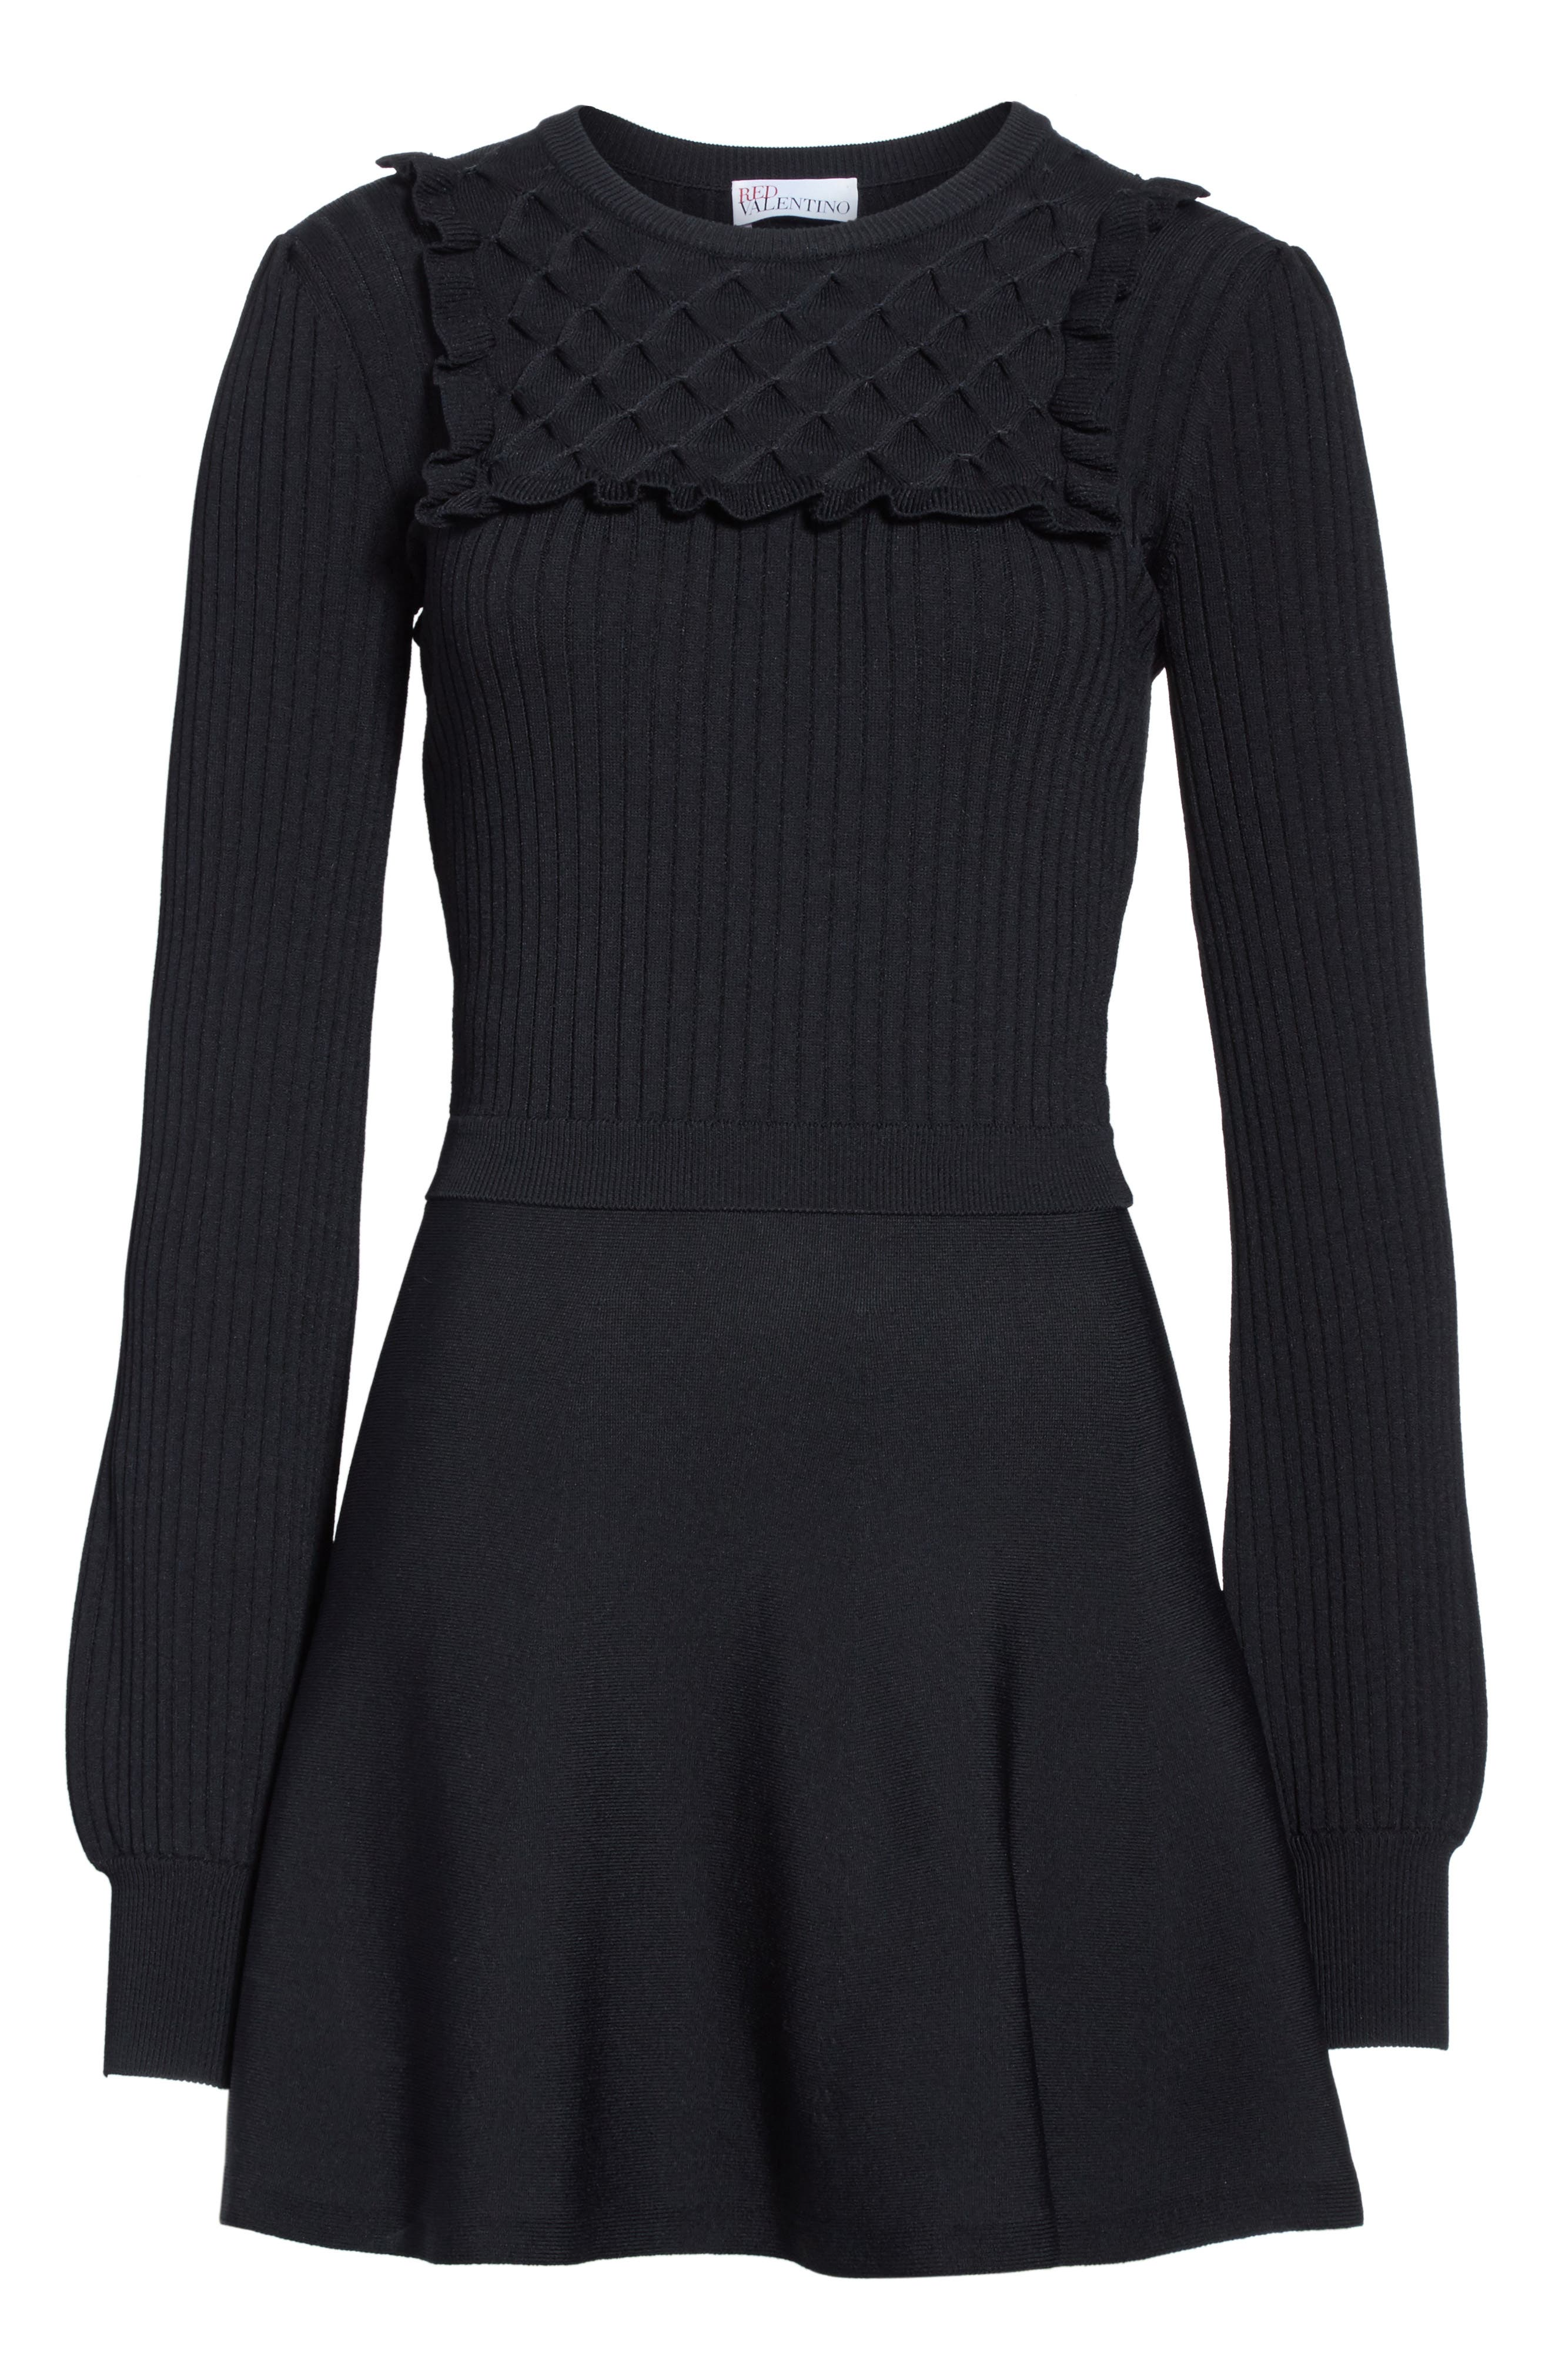 Hand Stitched Stretch Knit Dress,                             Alternate thumbnail 6, color,                             001